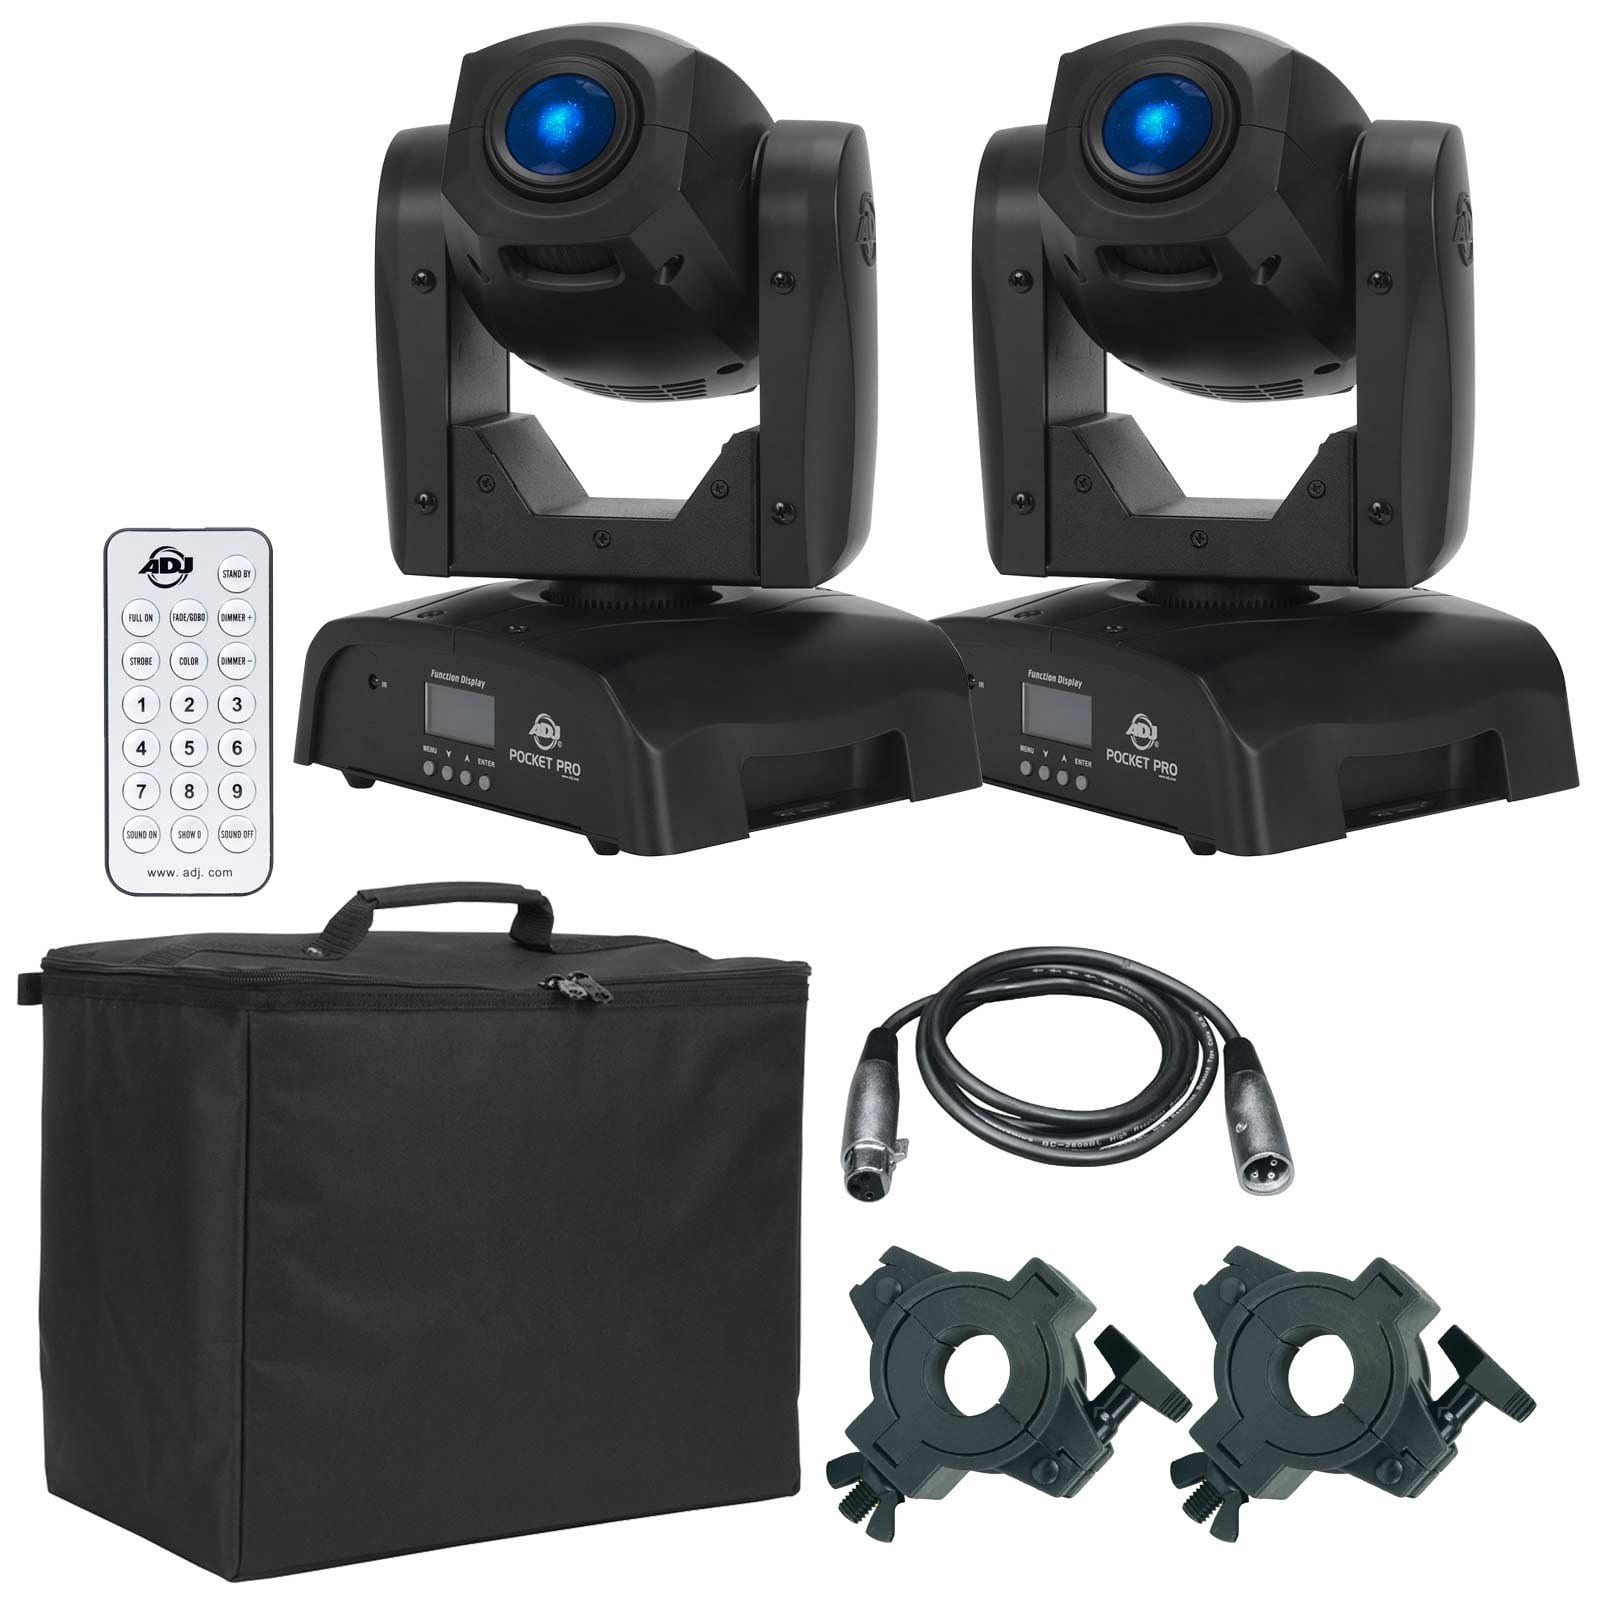 2-american-dj-pocket-pro-high-output-mini-moving-heads-with-uc-ir-universal-remote-control-package-b.jpg